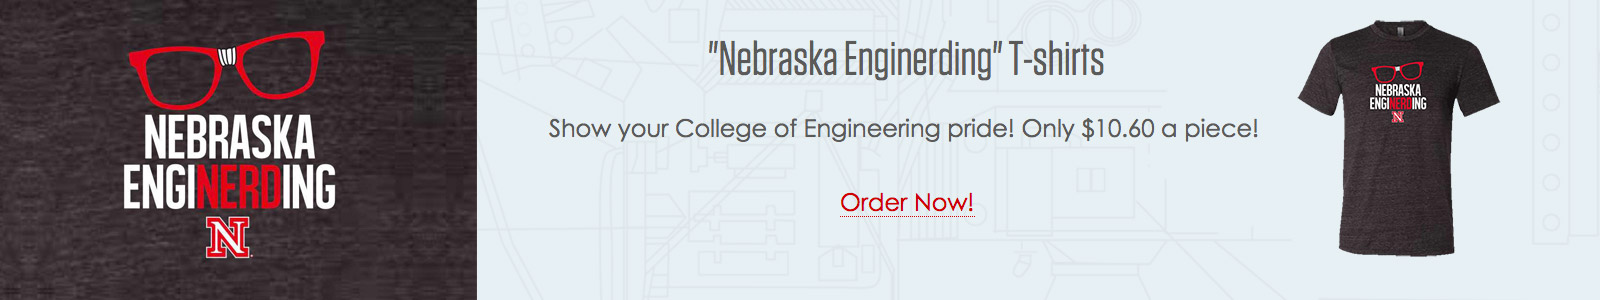 Nebraska Enginerding T-shirts - Show your College of Engineering pride! Only $10.60 a piece!